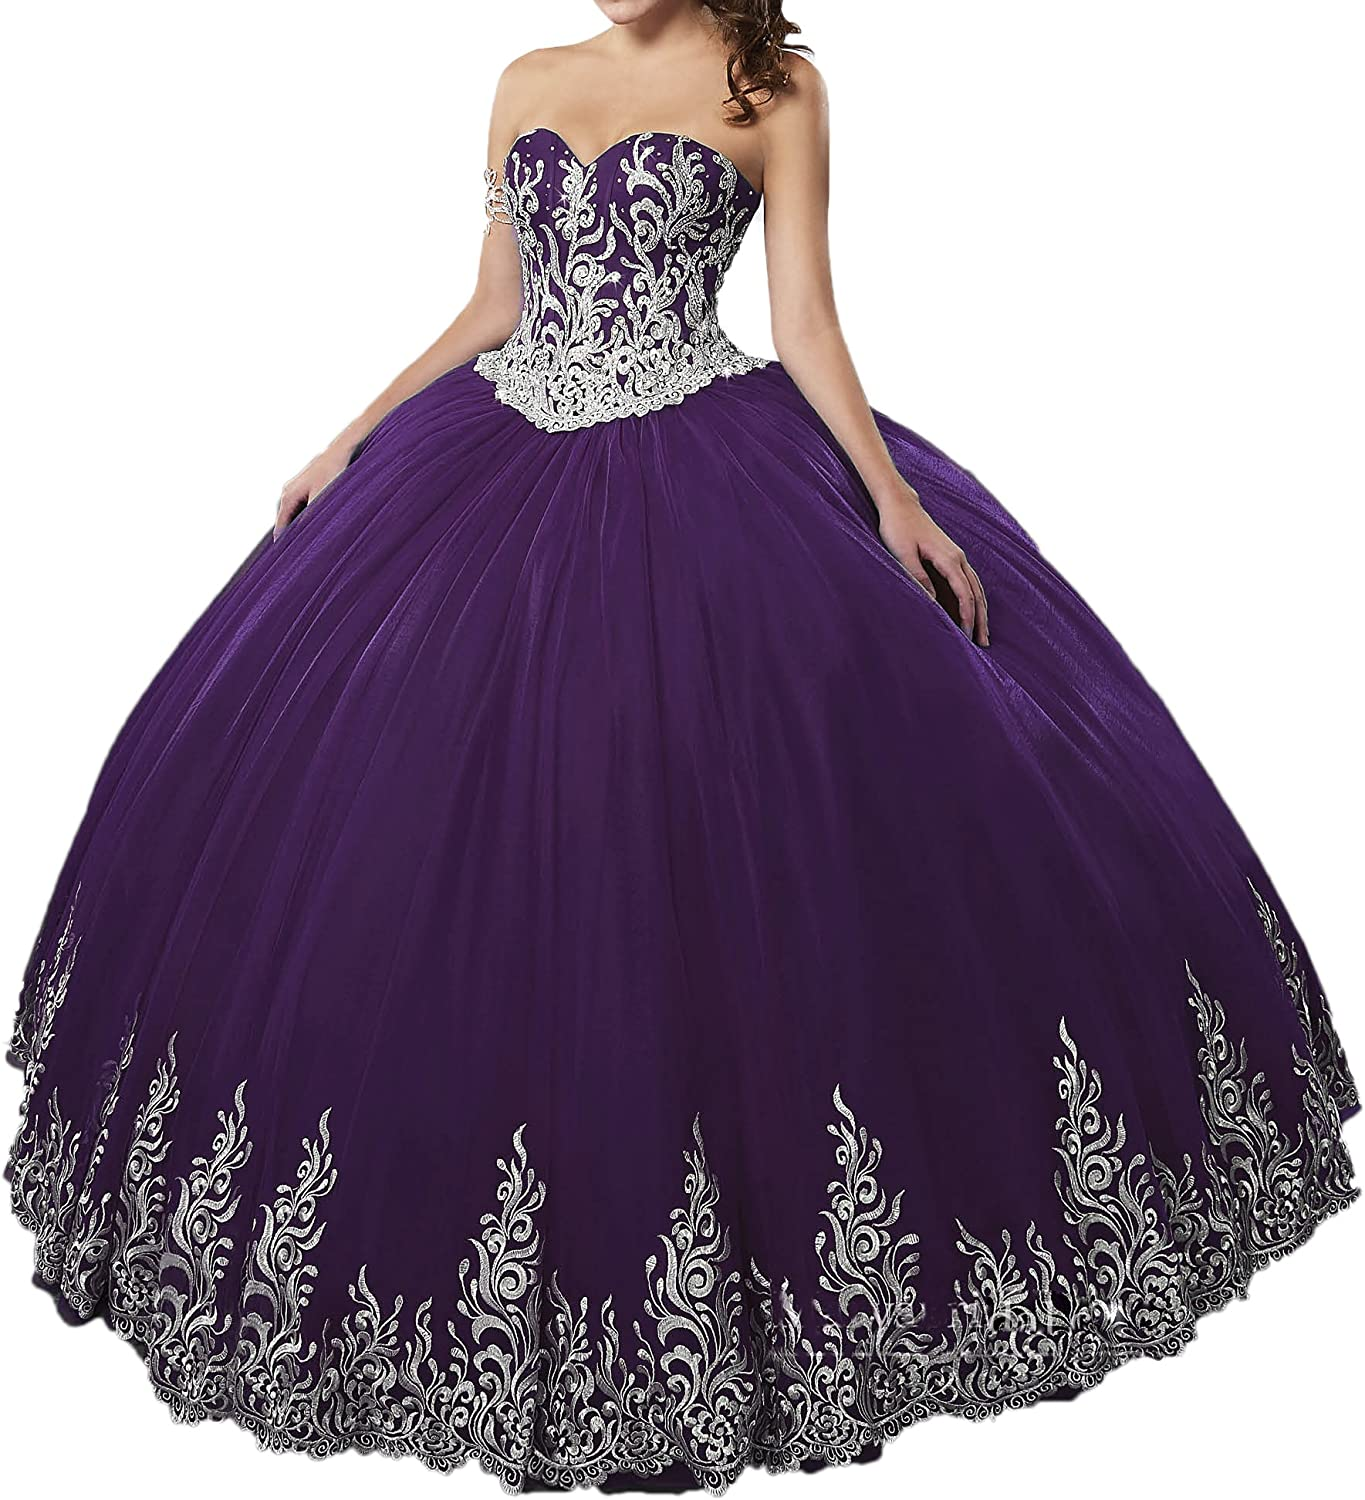 Beilite Women's Sweetheart Embroidery Ball Gown Quinceanera Dresses with Jacket